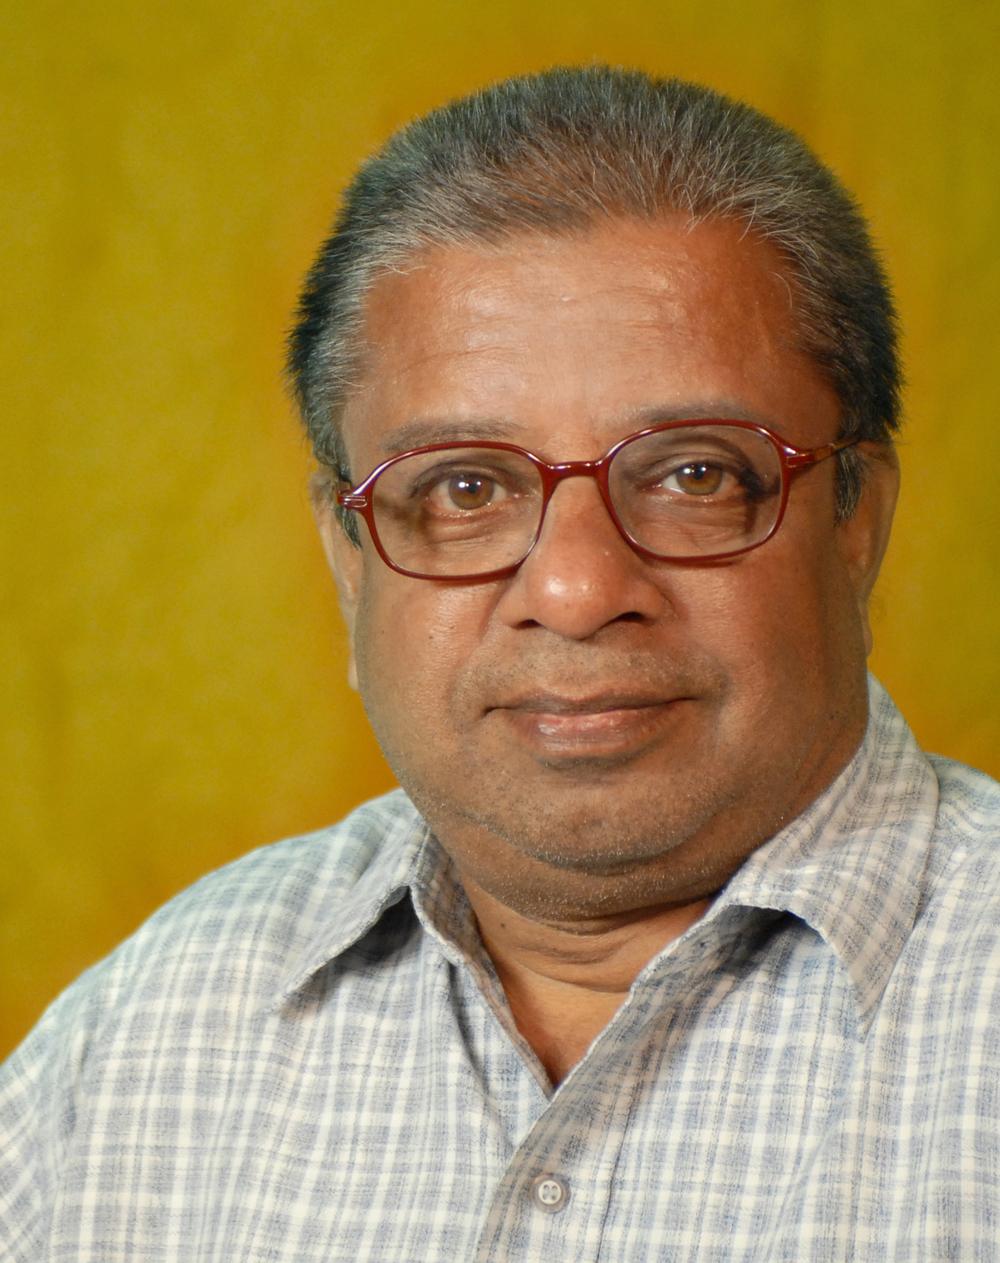 Copy of Bhaskara S. Narayanan (Music Composer)